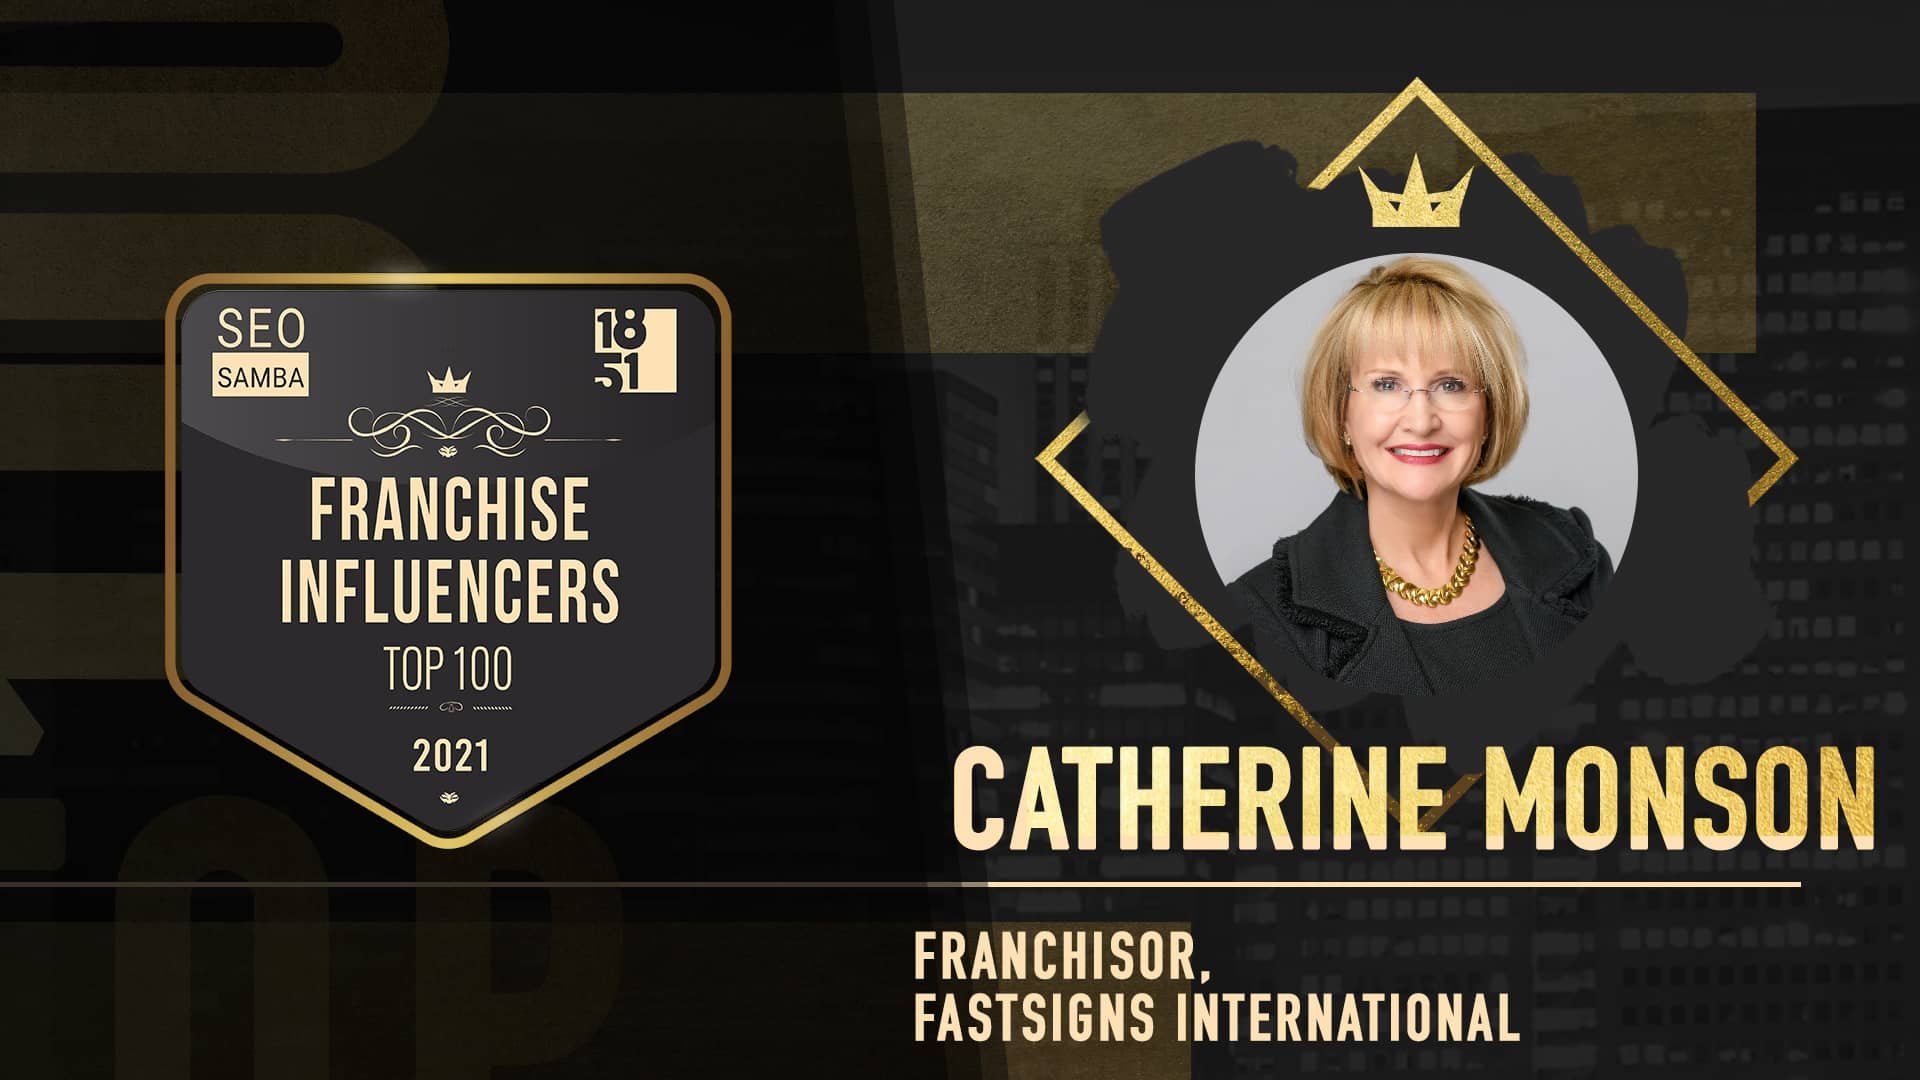 catherine-monson-fastsigns-international